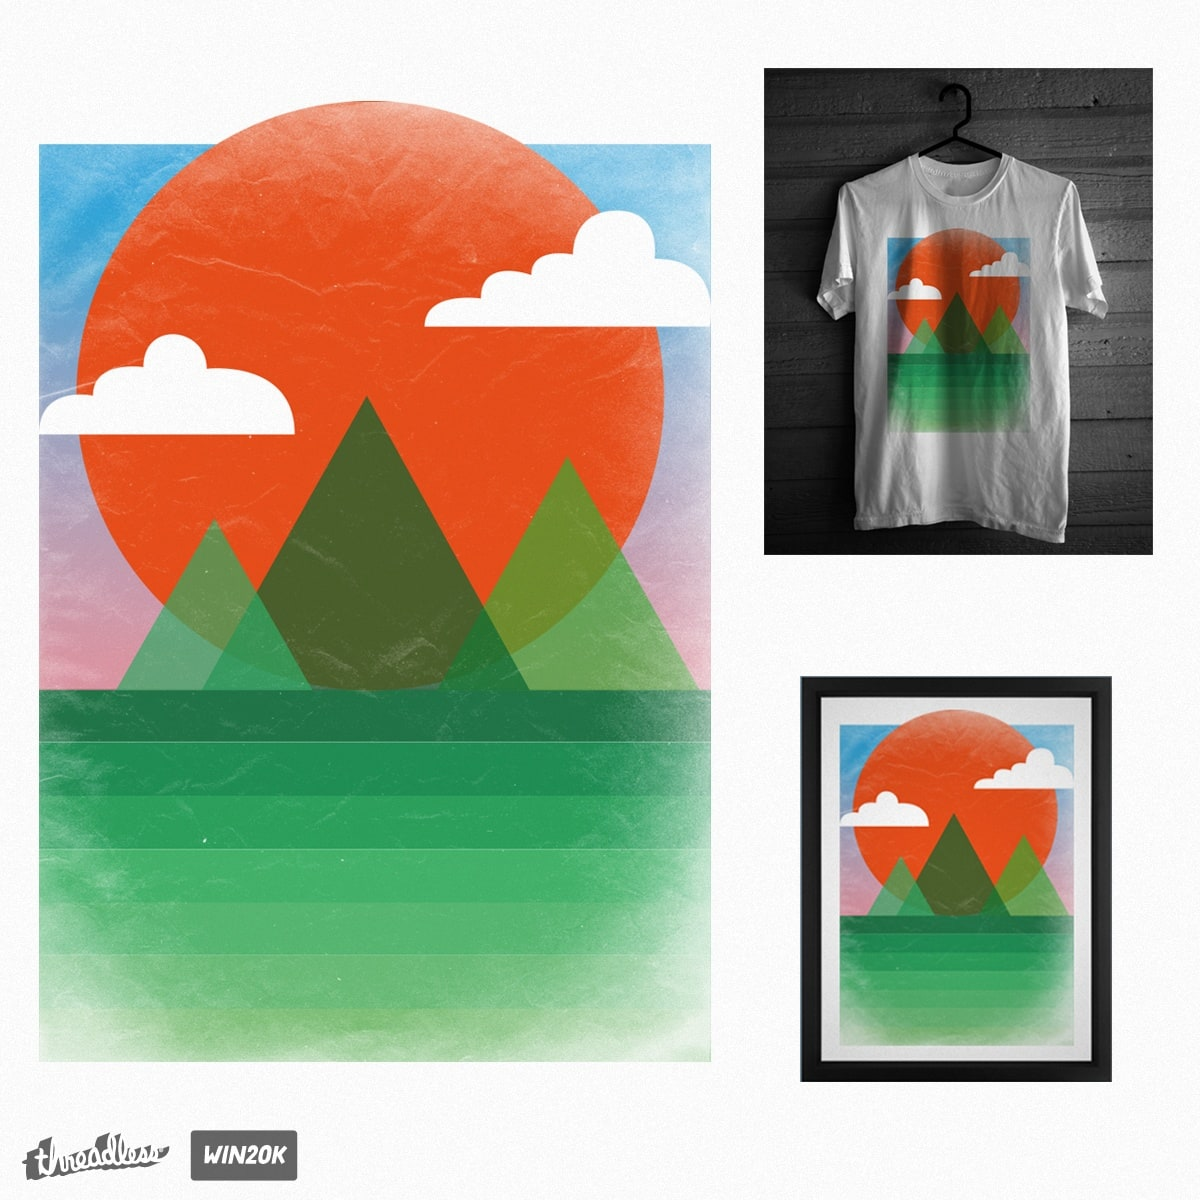 In the Valley by ammooina on Threadless